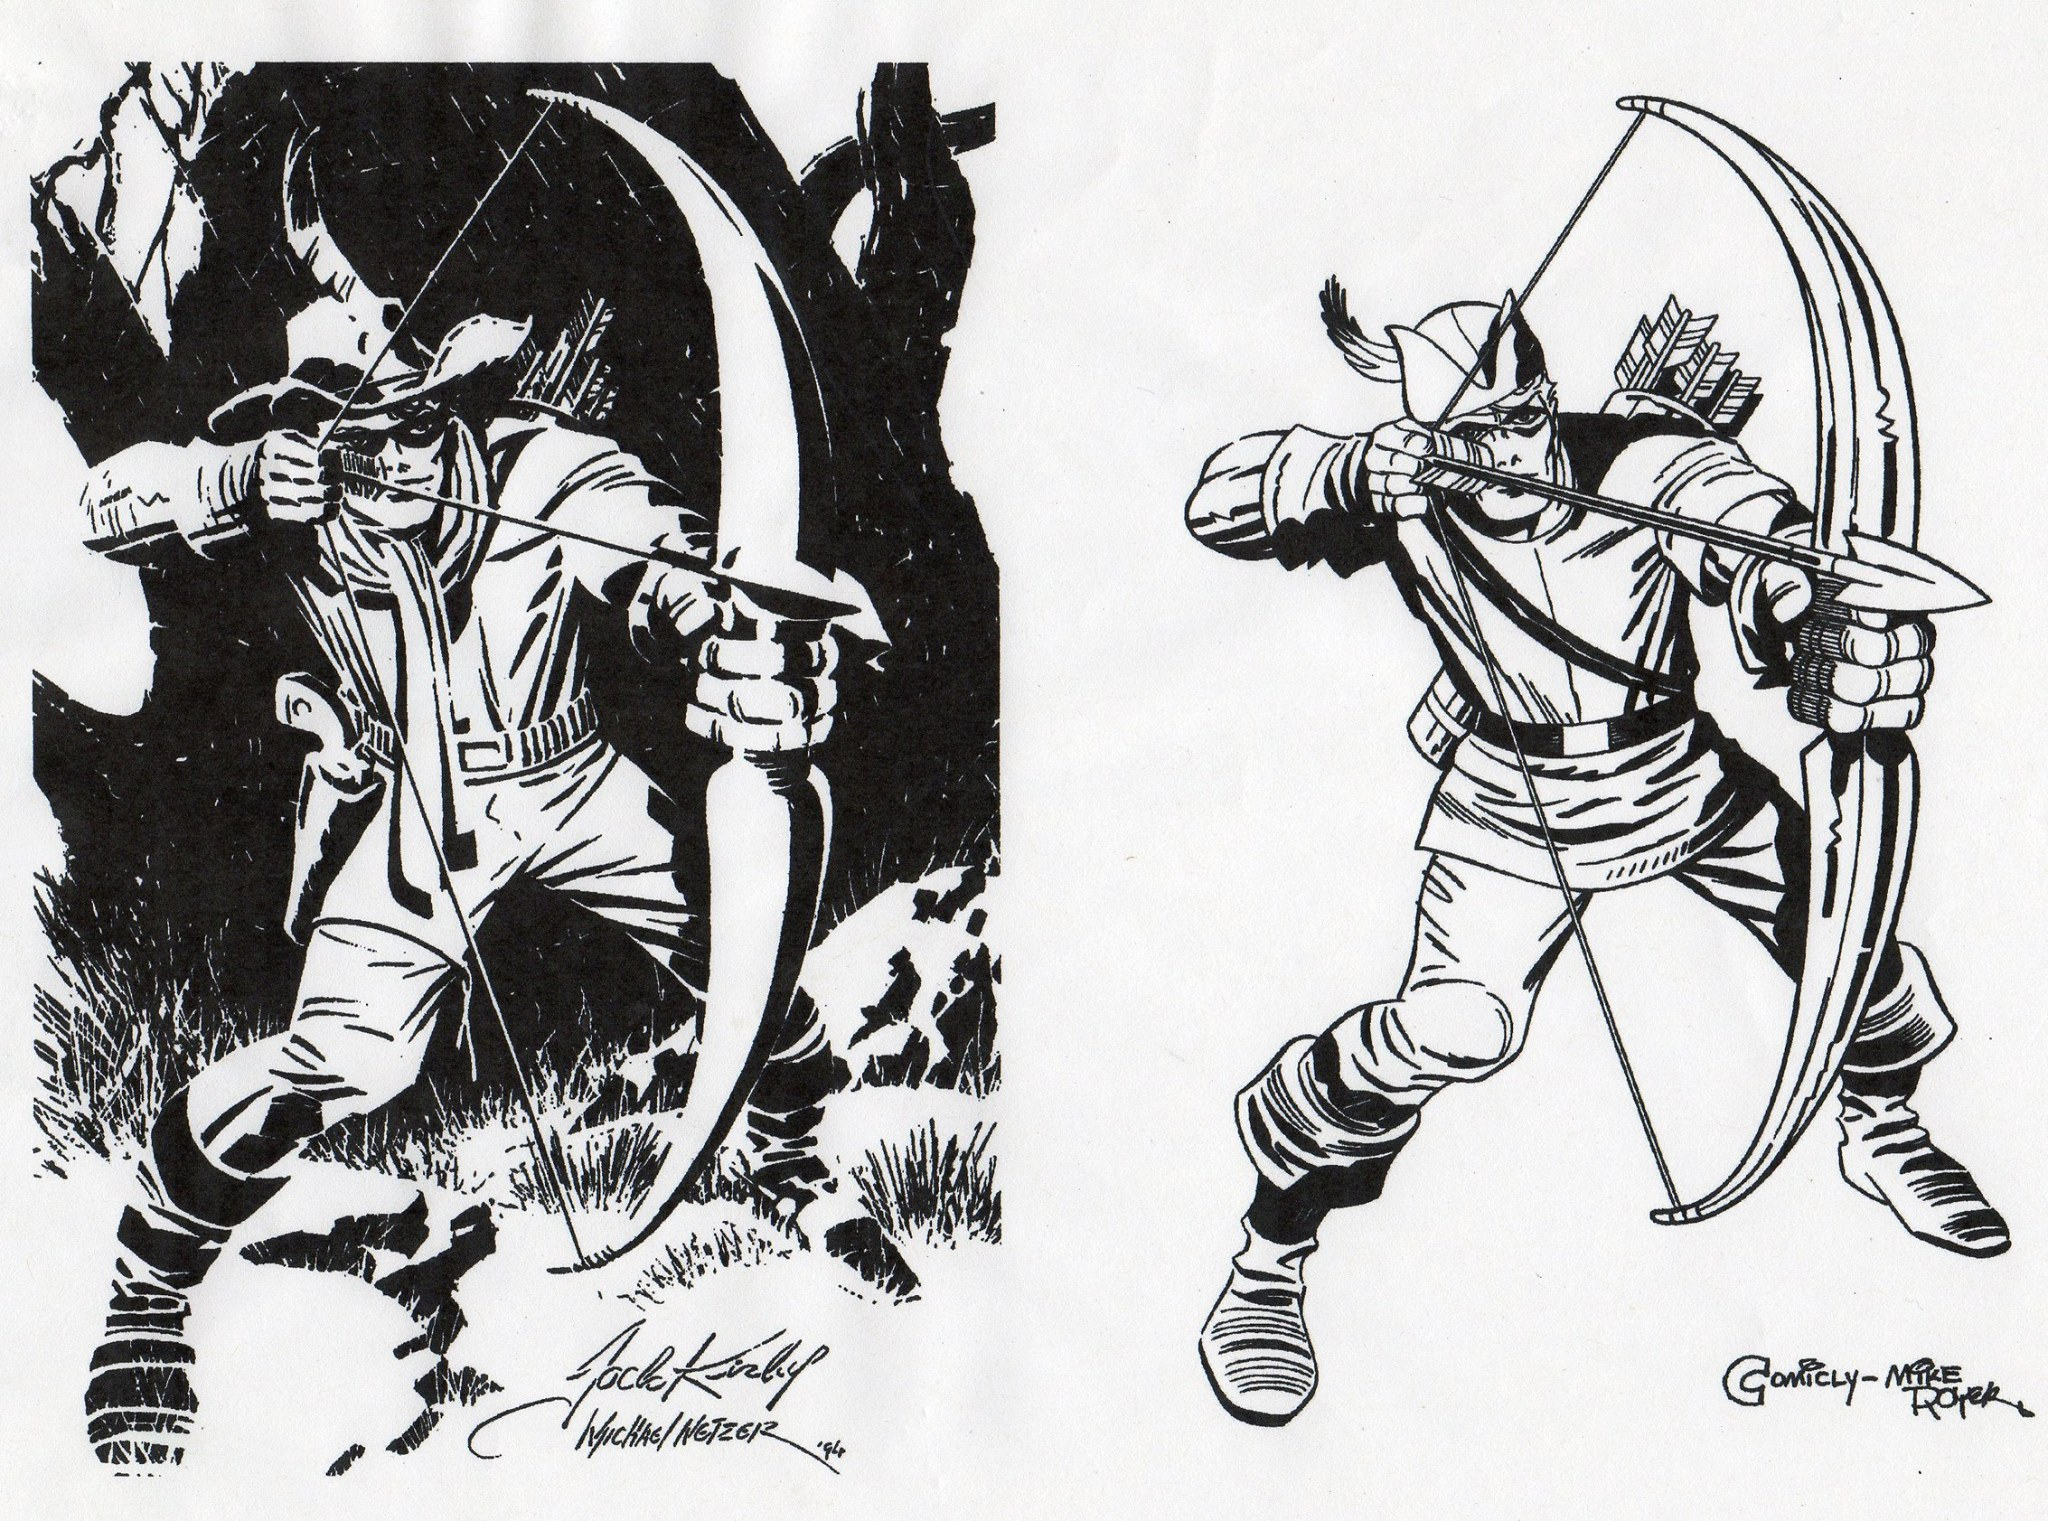 Bullseye by Jack Kirby next to Green Arrow by Mike Royer.